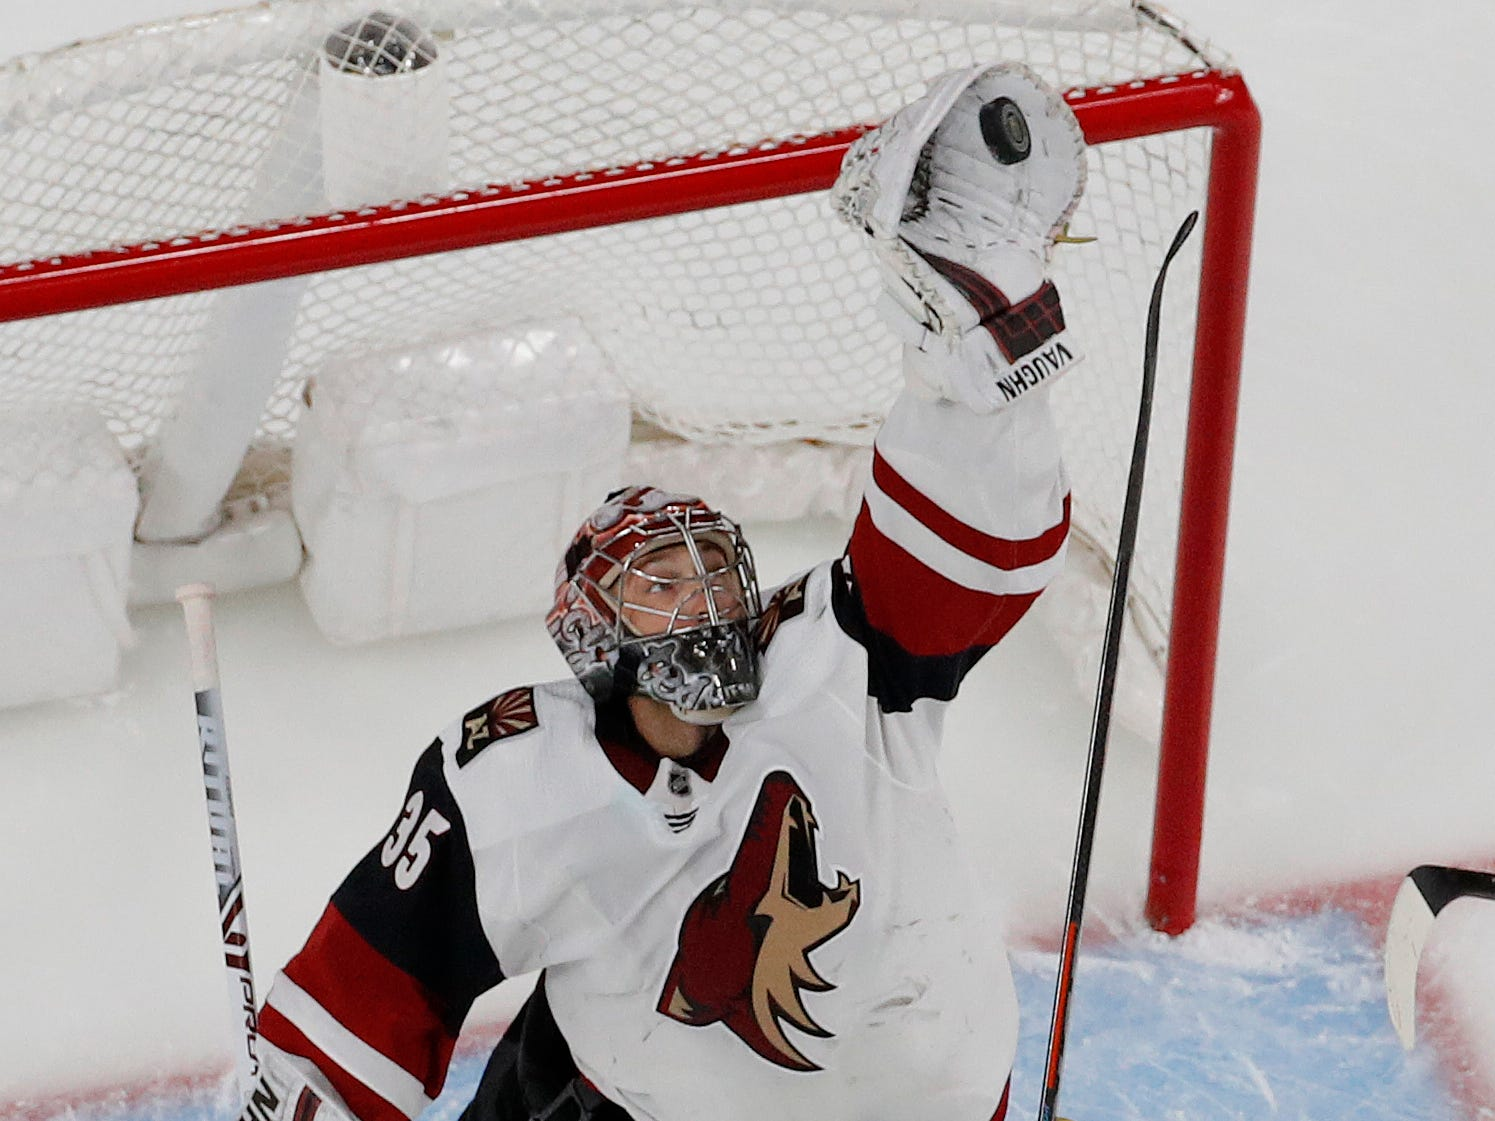 Arizona Coyotes goaltender Darcy Kuemper (35) grabs a puck out of the air beside Vegas Golden Knights left wing Max Pacioretty (67) during the first period of an NHL hockey game Tuesday, Feb. 12, 2019, in Las Vegas. (AP Photo/John Locher)